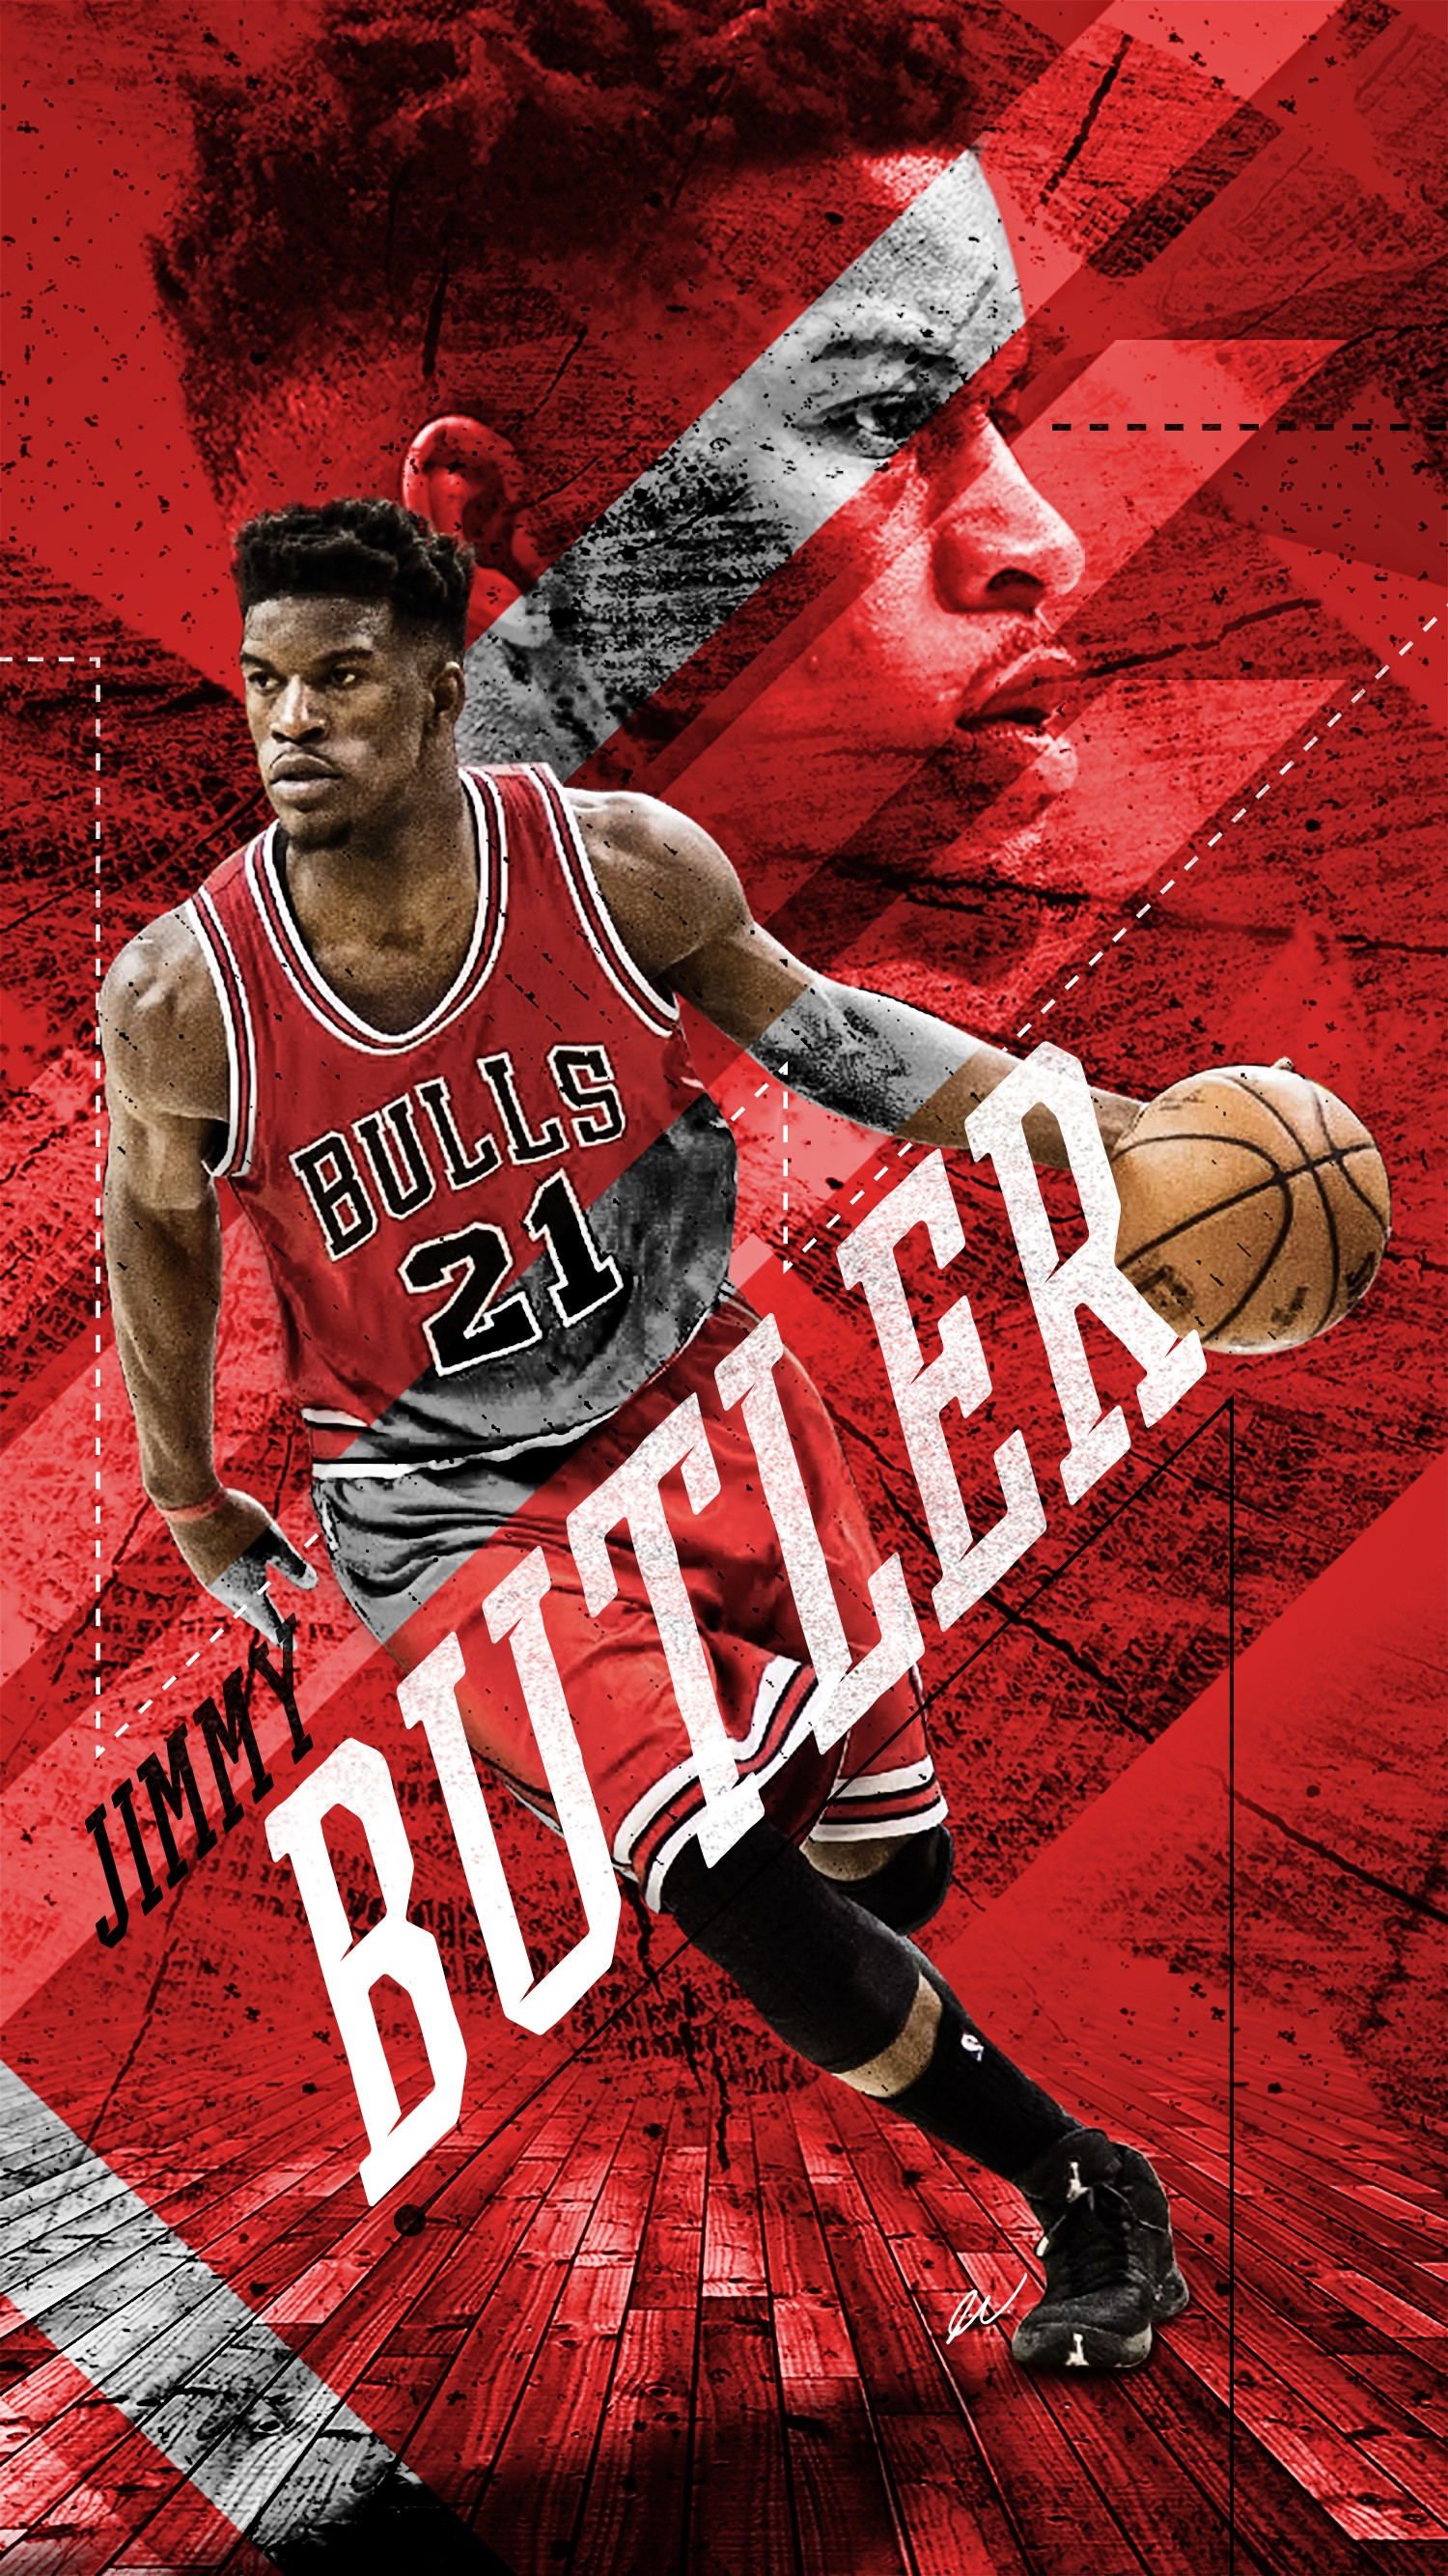 JIMMY BUTLER'S JOURNEY FROM BEING HOMELESS TO BECOMING A ... |Jimmy Butler Dunk Wallpaper